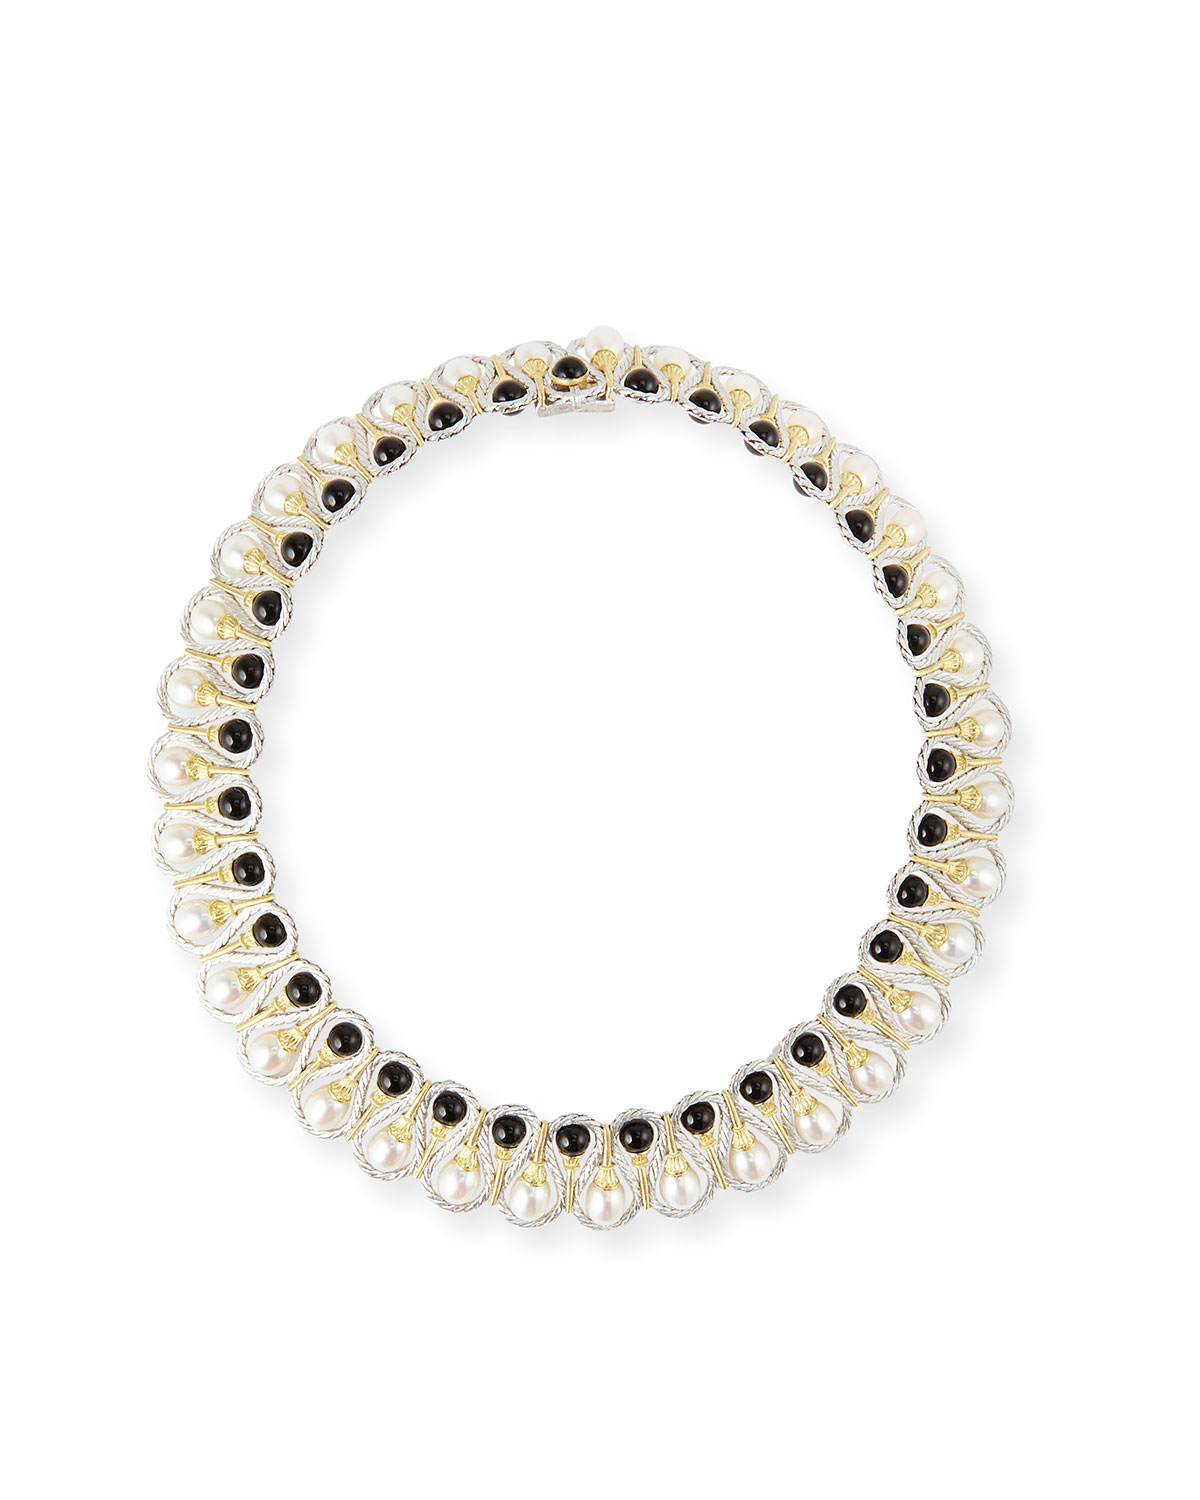 BUCCELLATI 18K GOLD COLLAR NECKLACE WITH ONYX AND PEARLS